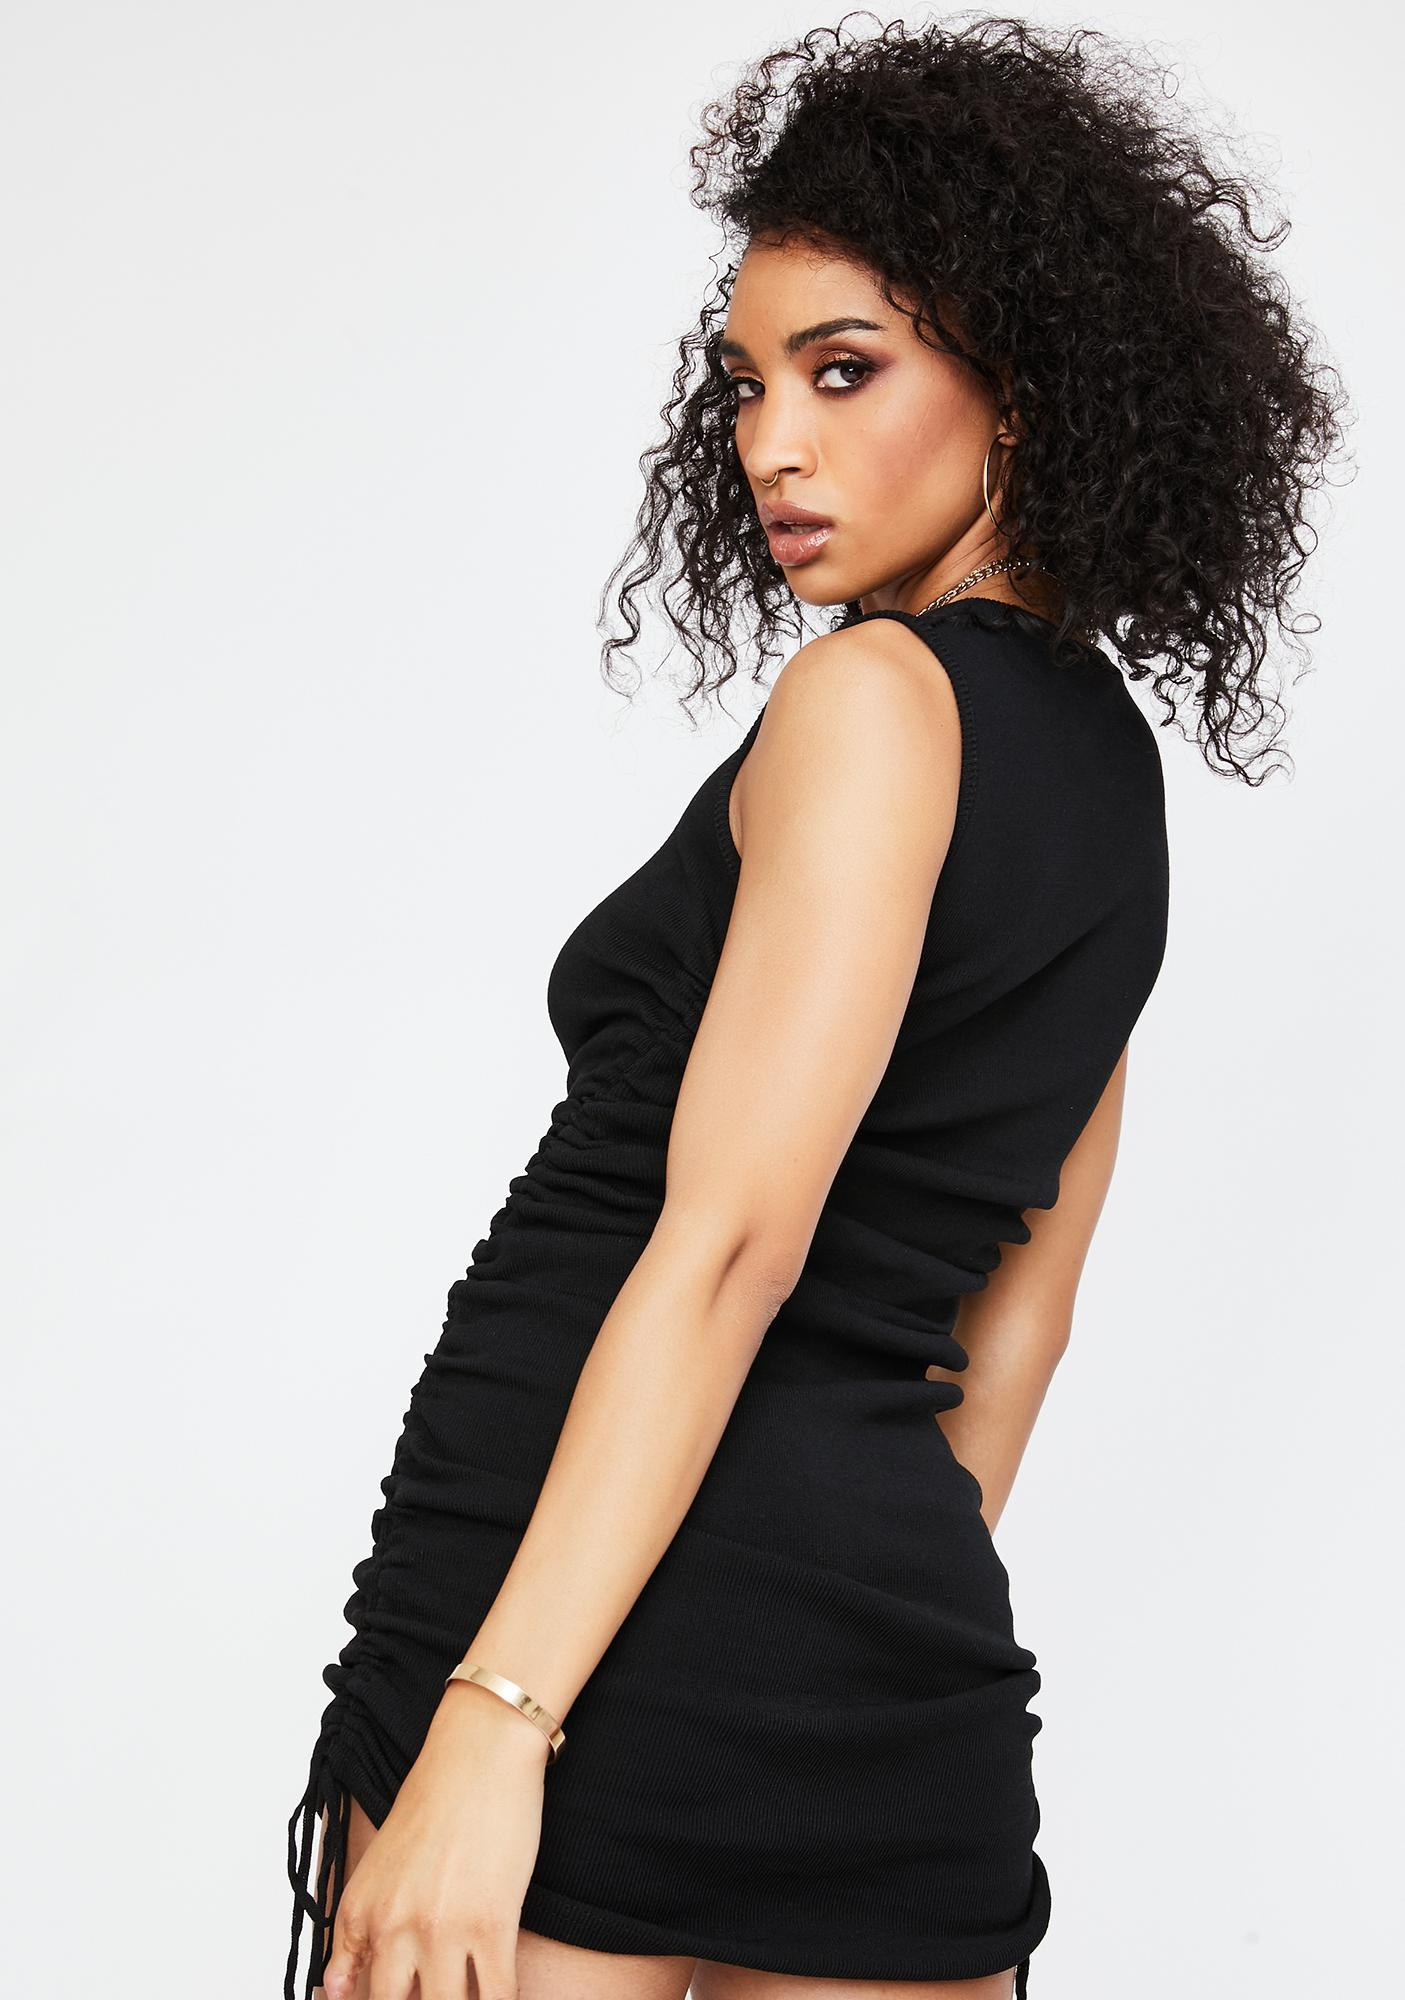 Lioness Black Military Minds Mini Dress